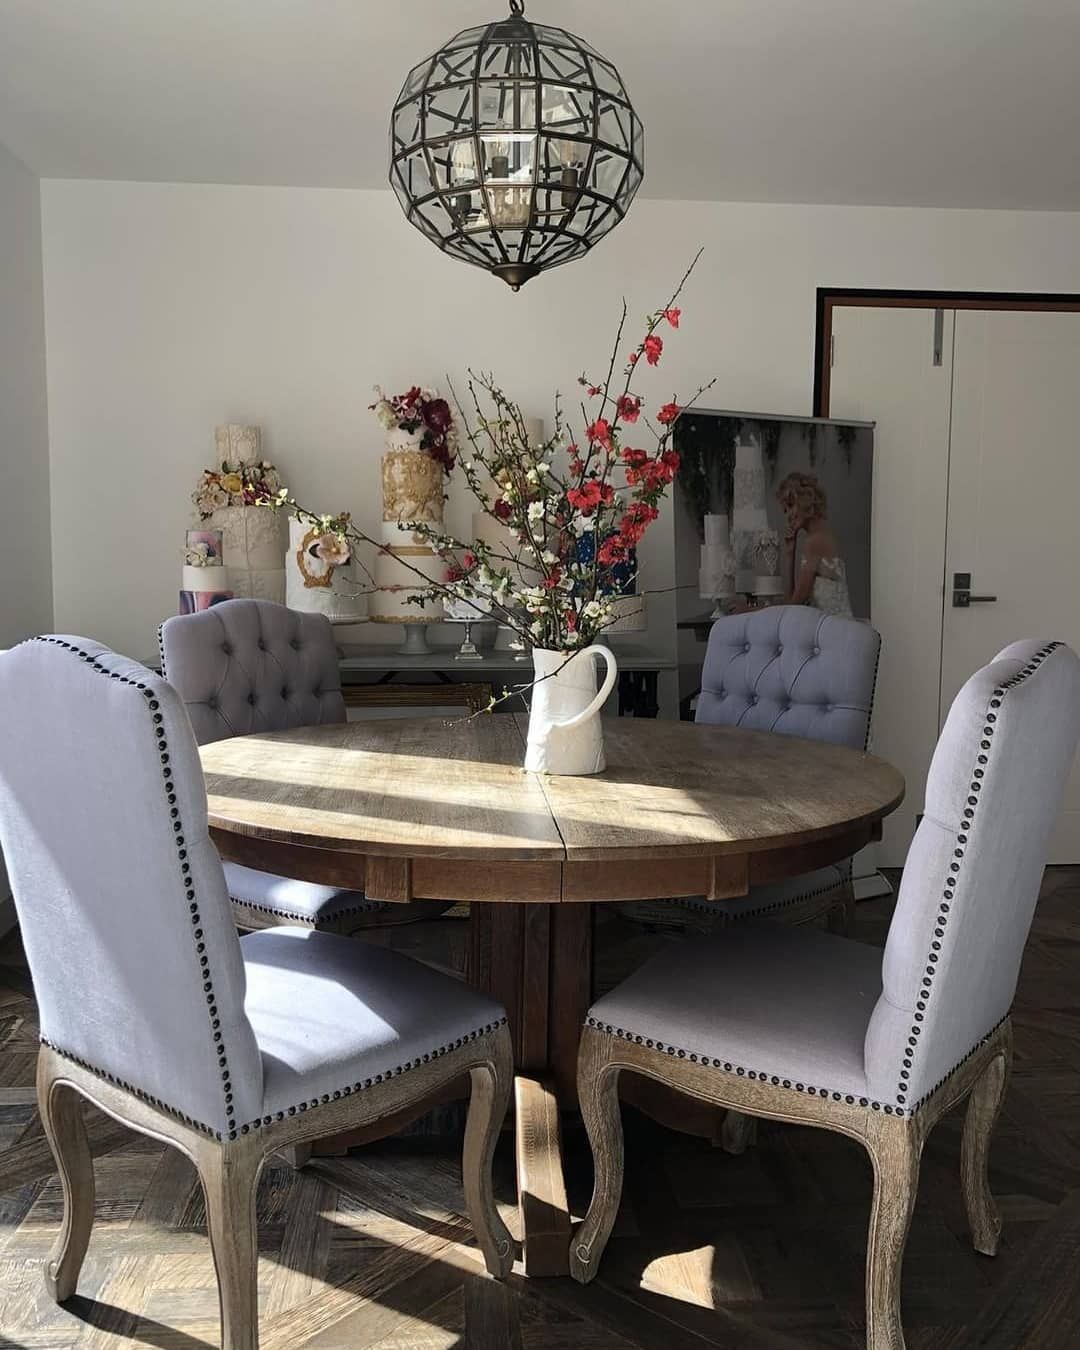 At Home Dining Chairs.Marie Dining Chair In 2019 Brosaathome Instagram Love Dining